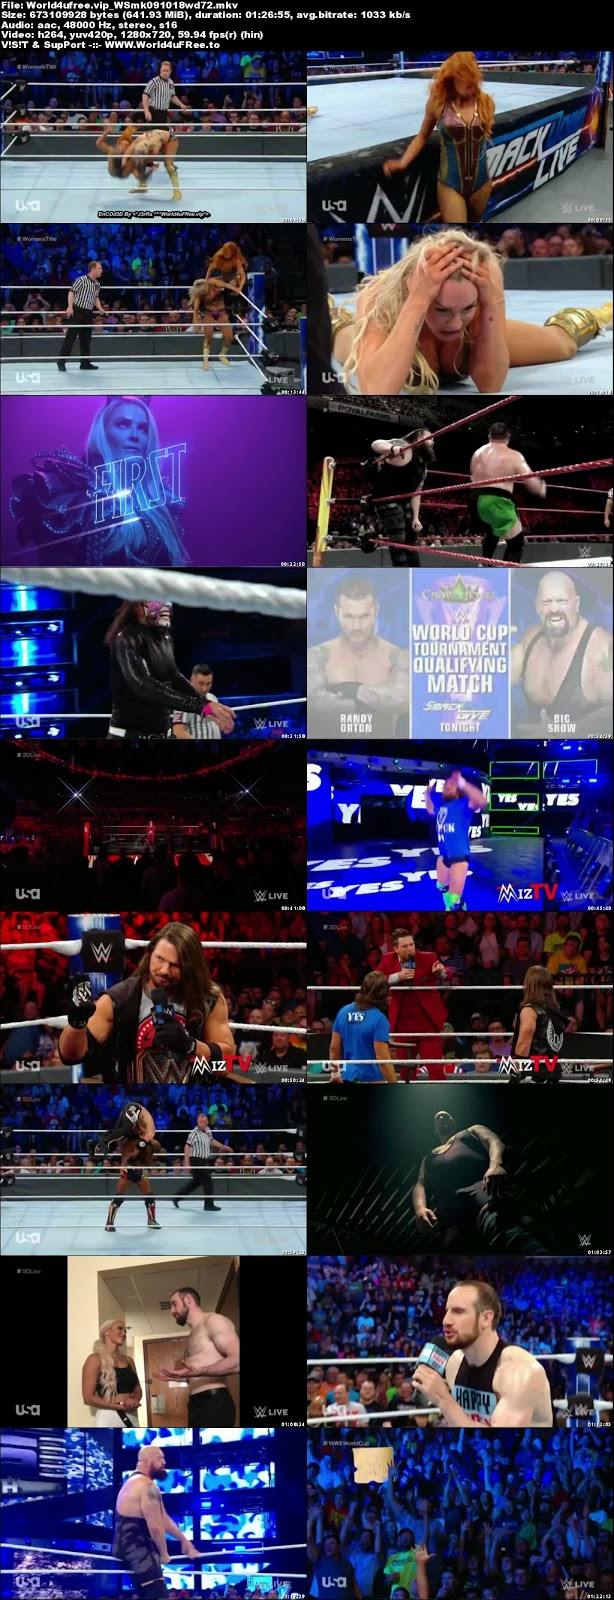 WWE Smackdown Live 09 OCTOBER 2018 720p HDTV 600MB x264 tv show wwe WWE Smackdown Live 09 OCTOBER 2018 HDTV 480p 650MB x264 compressed small size free download or watch online at world4ufree.vip